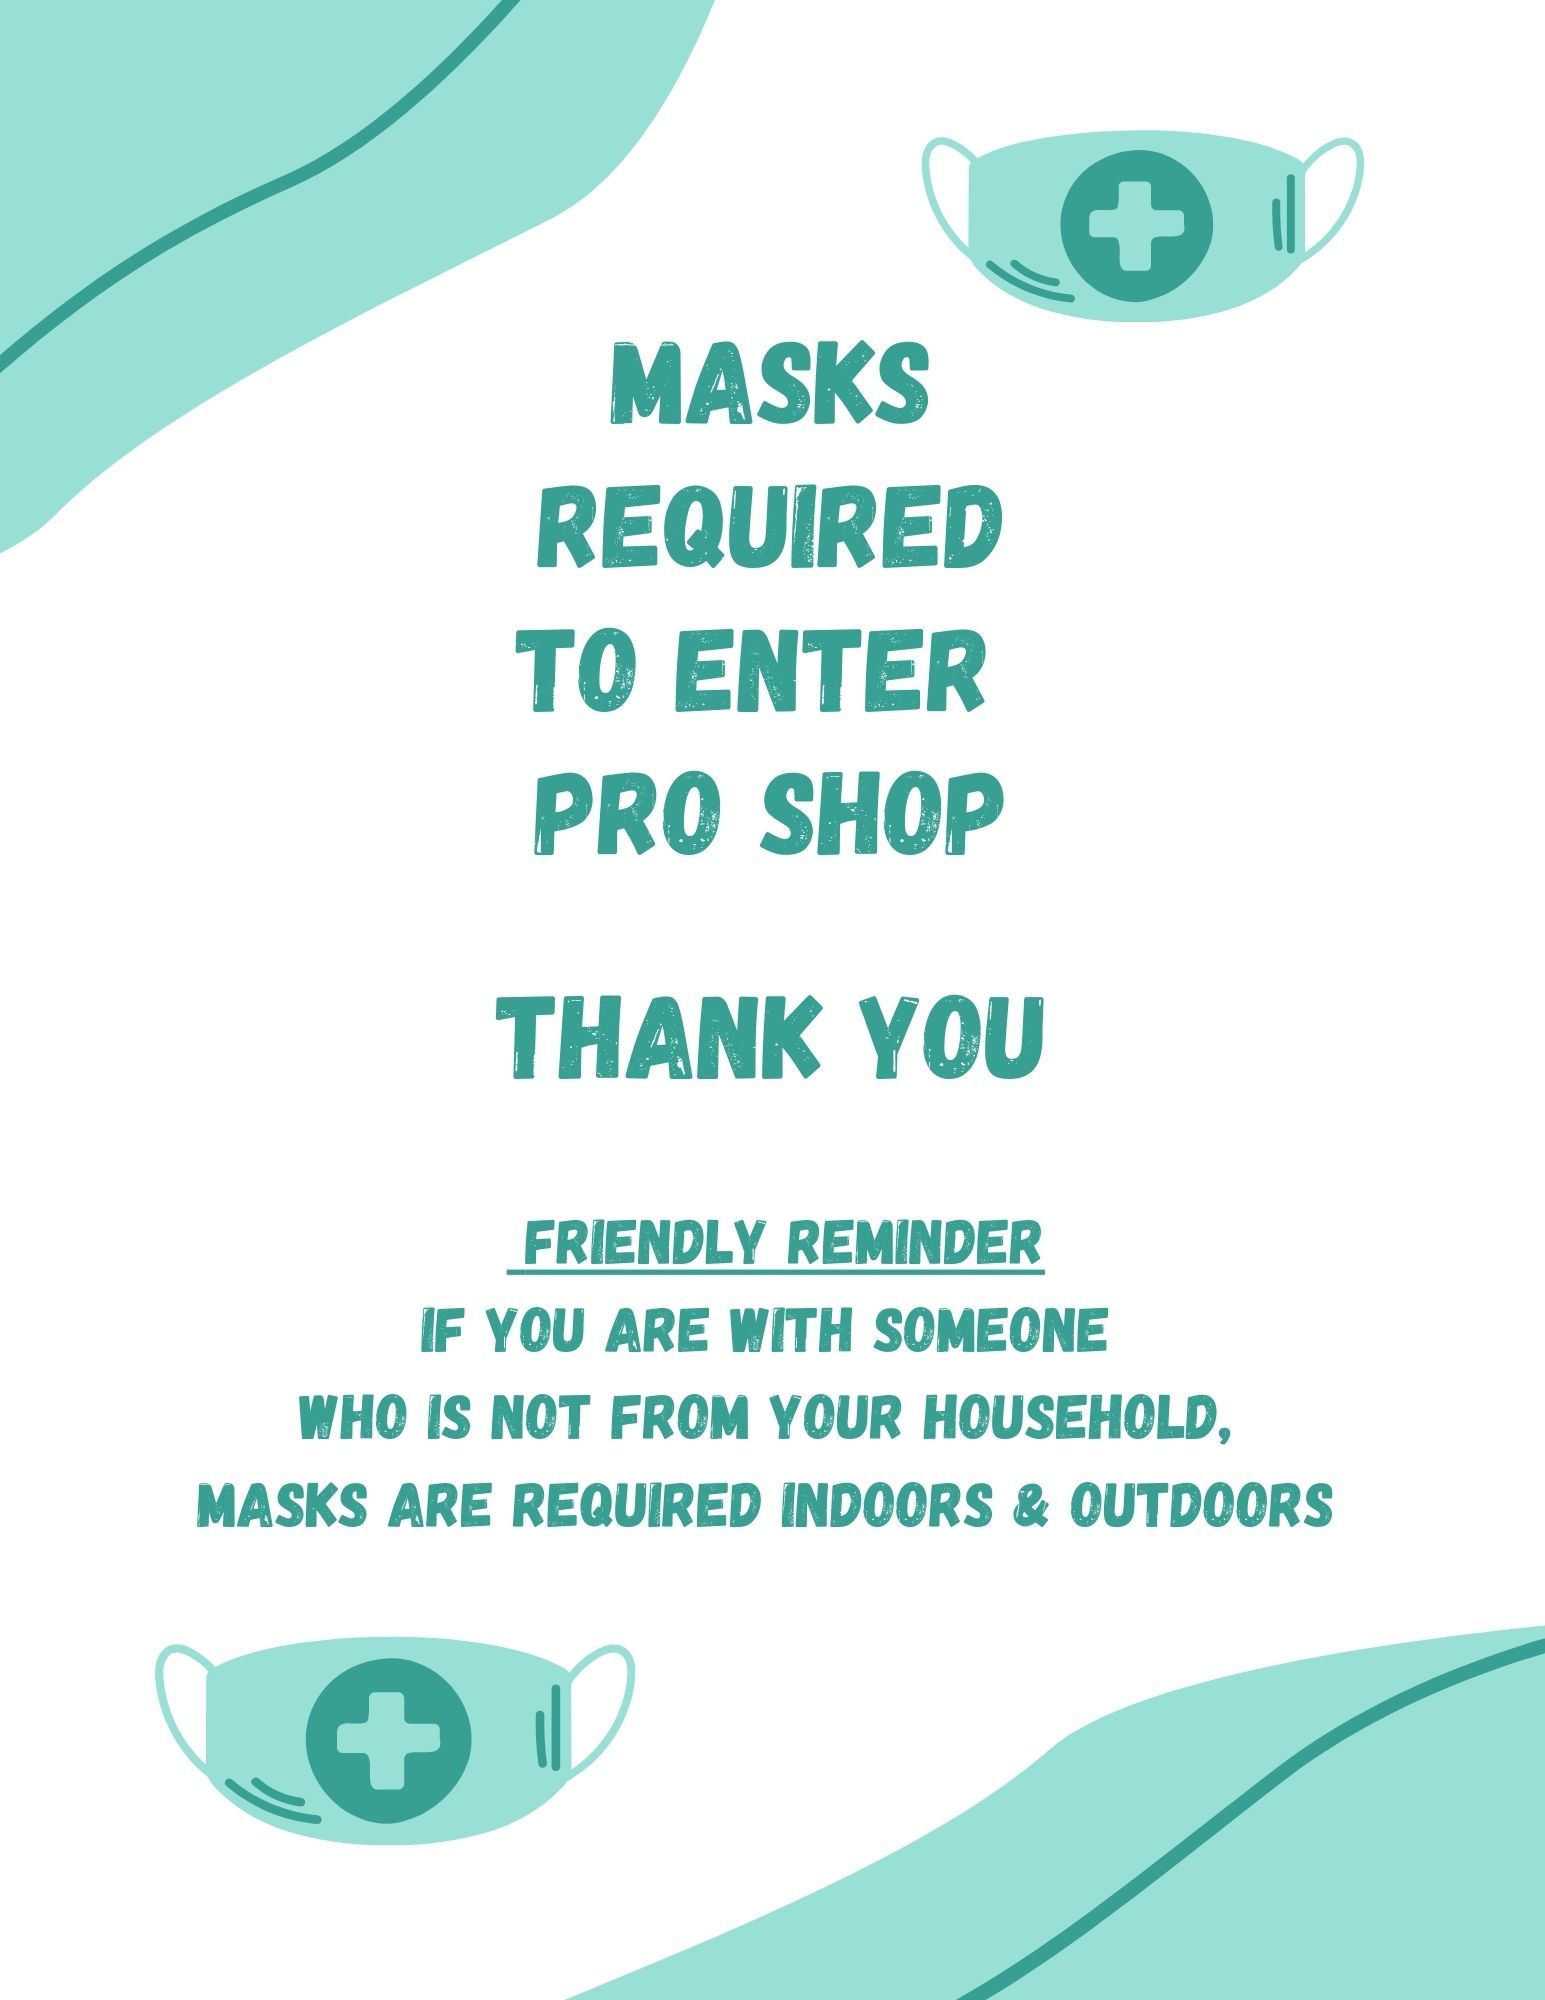 New mask sign